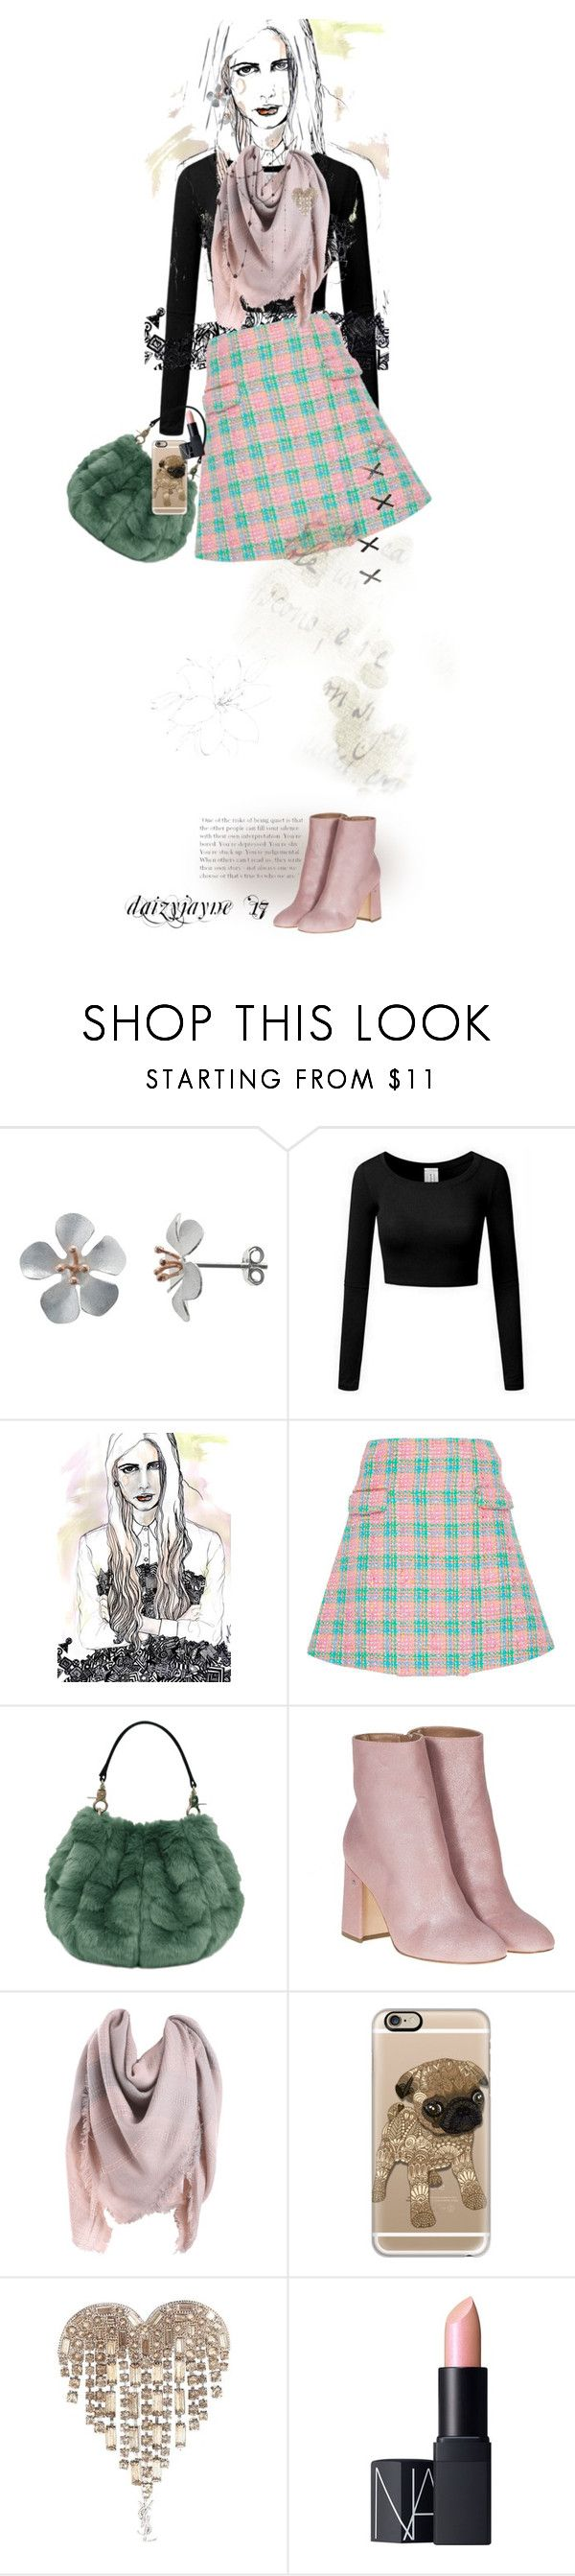 """Plaid"" by daizyjayne ❤ liked on Polyvore featuring Nina B, Emilio De La Morena, Laurence Dacade, Casetify, Yves Saint Laurent, NARS Cosmetics, plaid, contestentry and fashionillustrator"